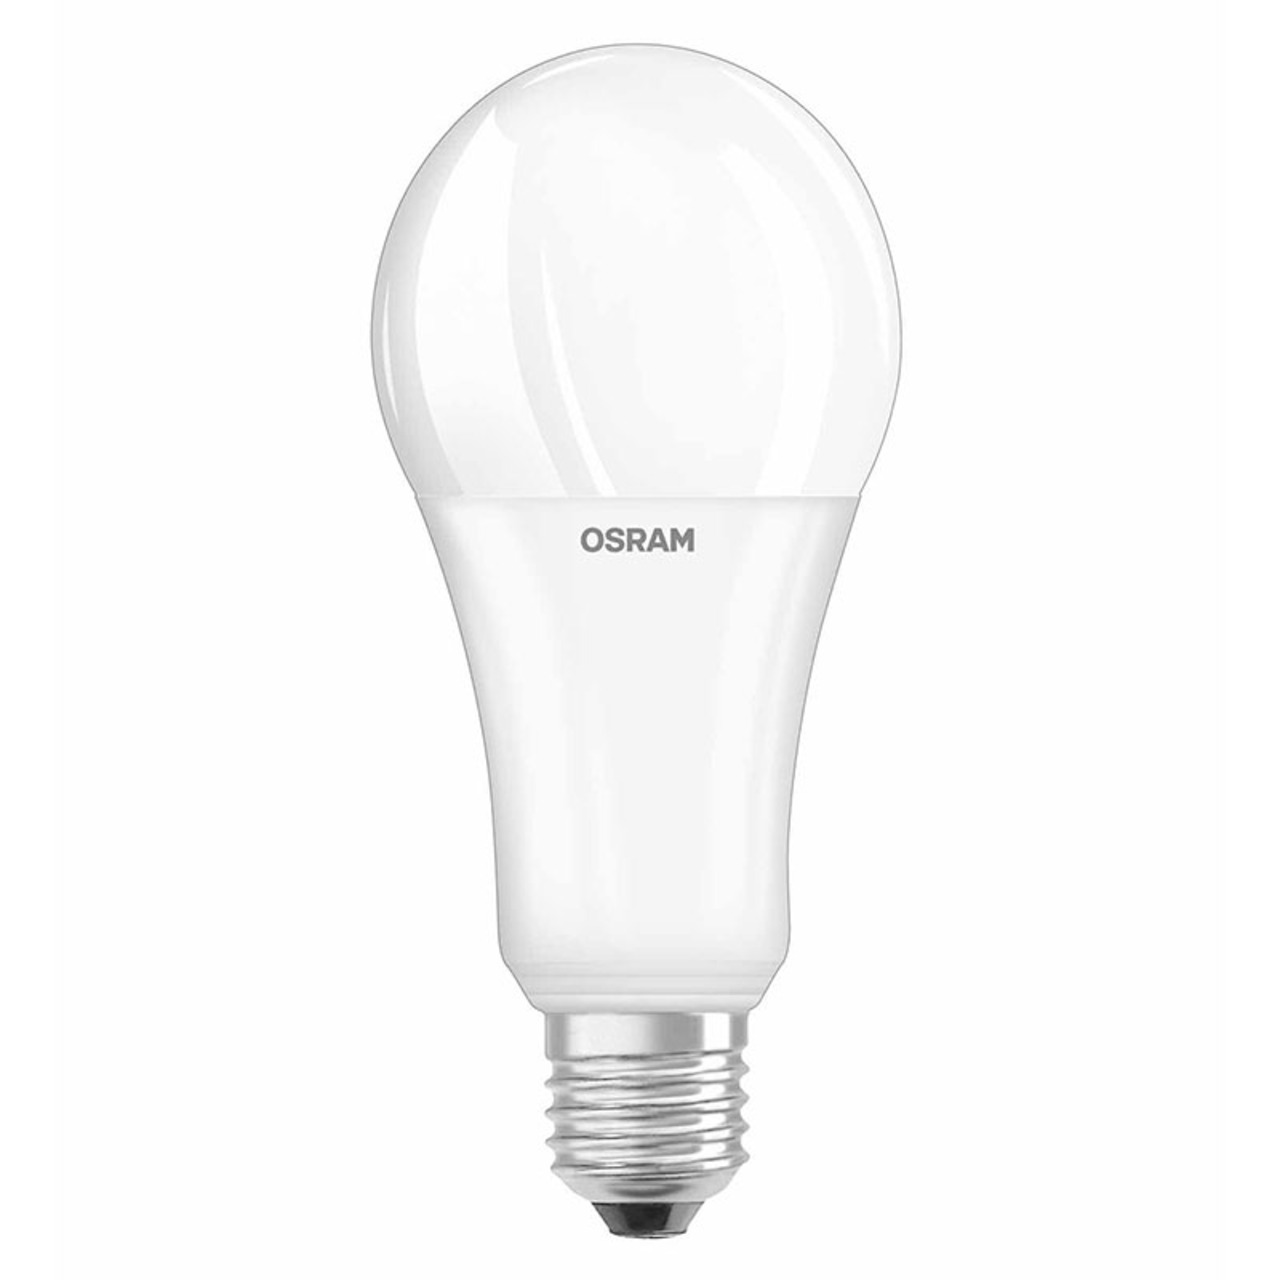 OSRAM LED SUPERSTAR 21-W-LED-Lampe E27- matt- dimmbar -2500 lm-